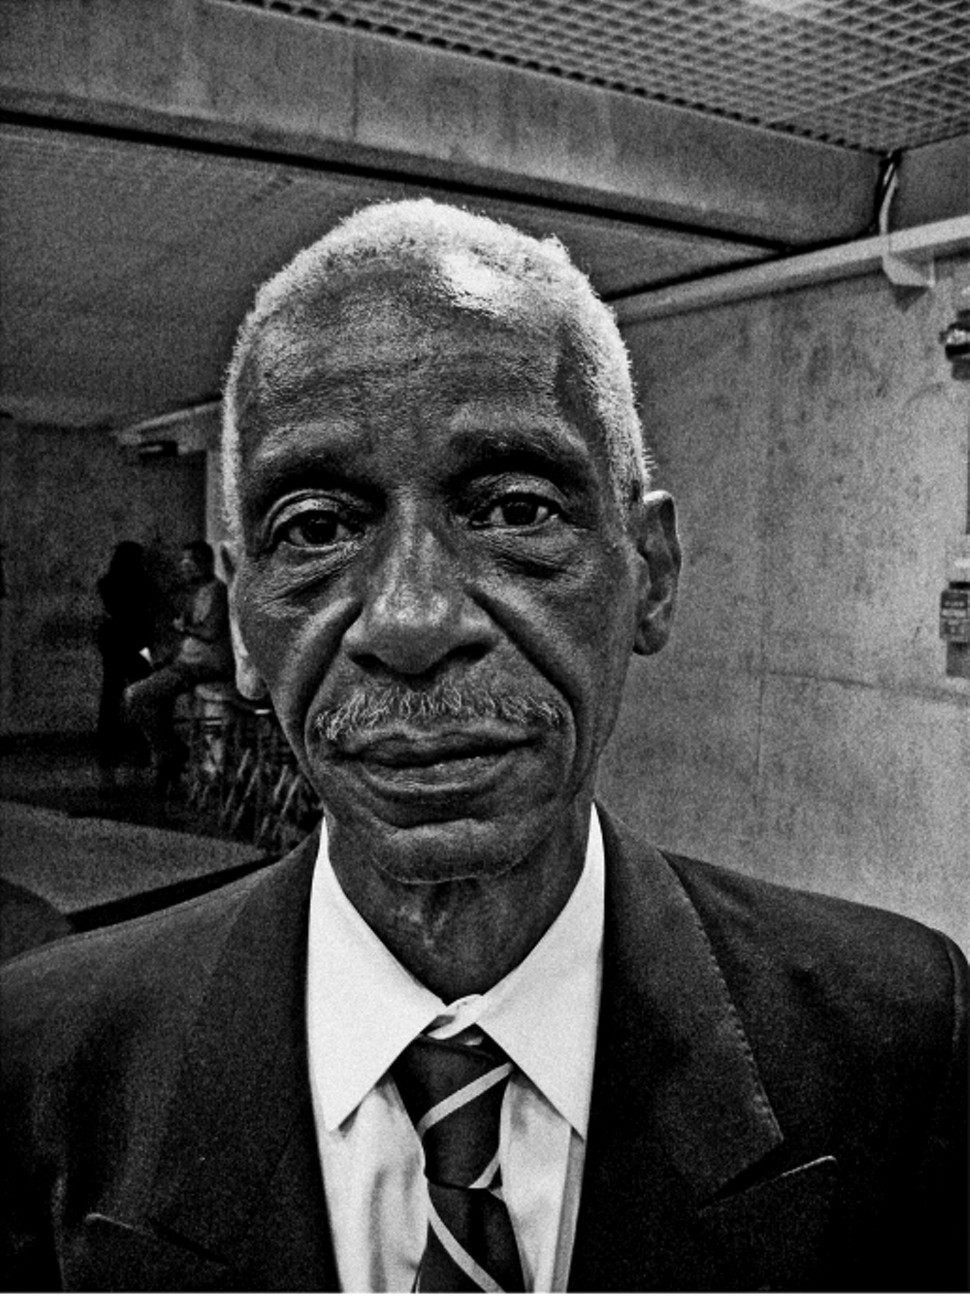 Thursday musical happenings: Roscoe Mitchell and Ken ...